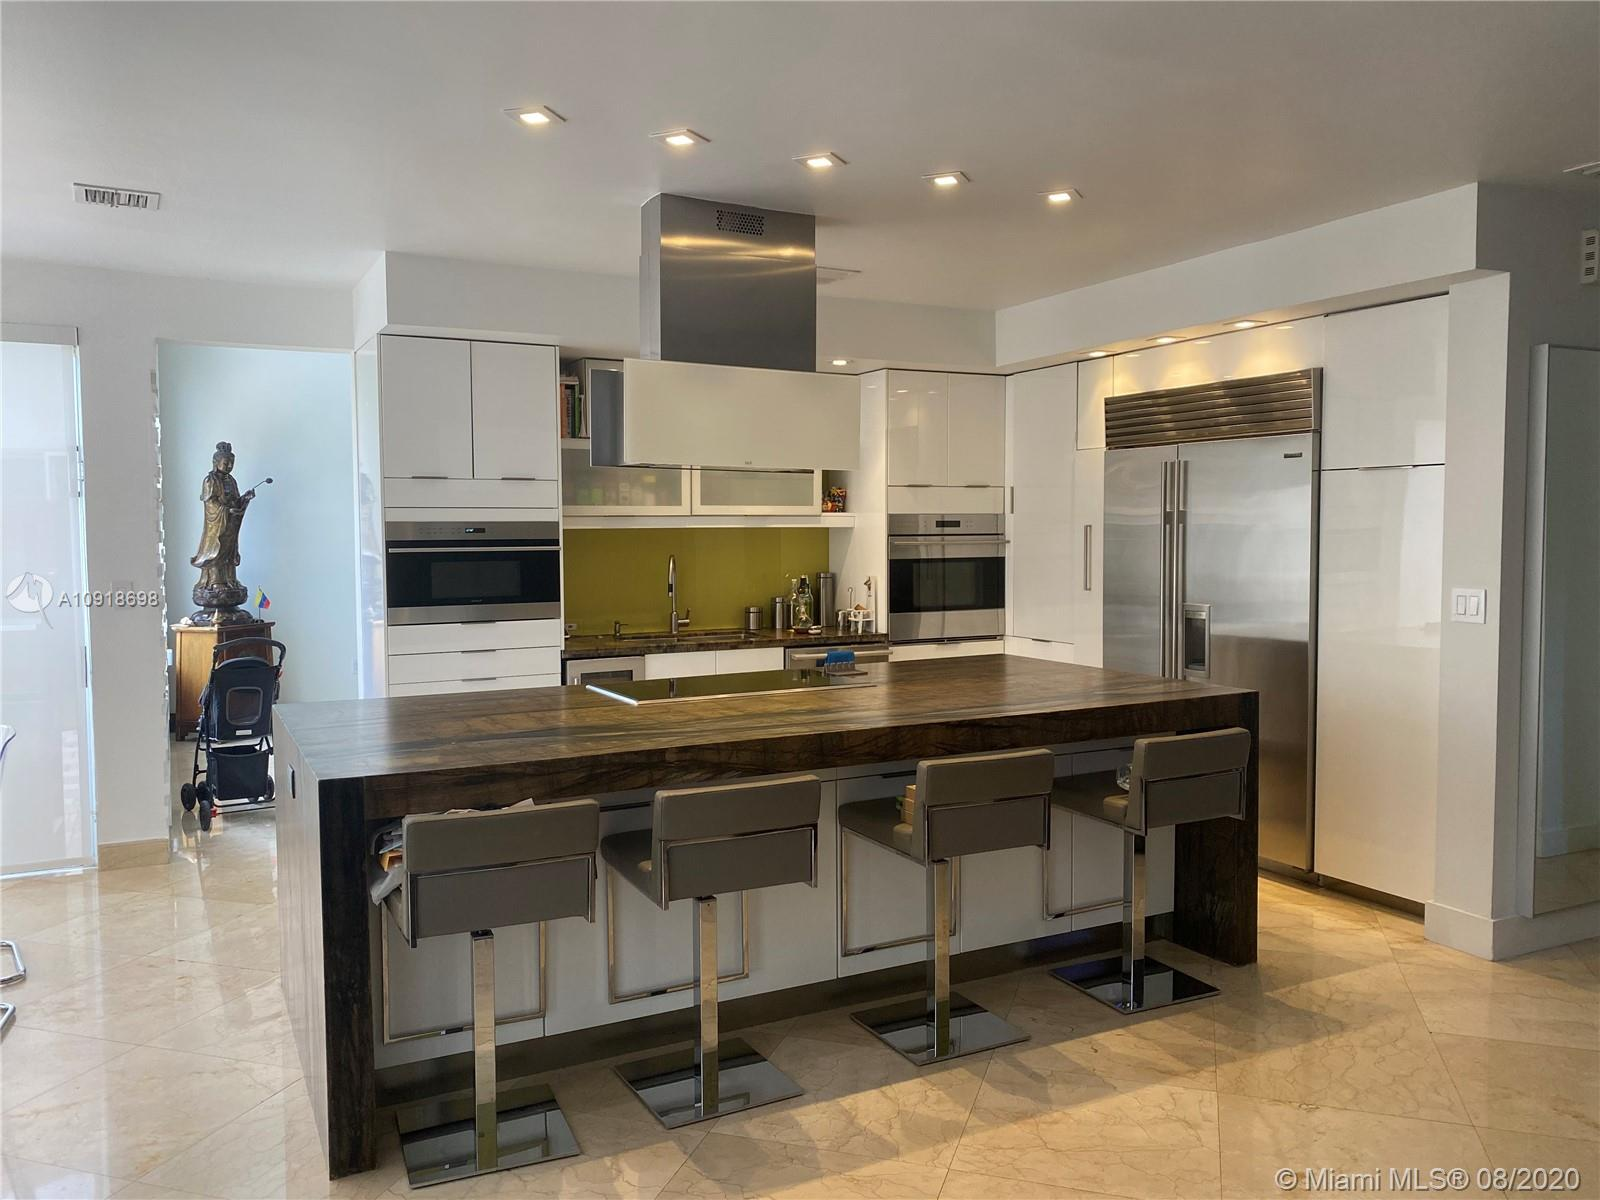 Doral Isles - 10974 NW 72nd Ter, Doral, FL 33178